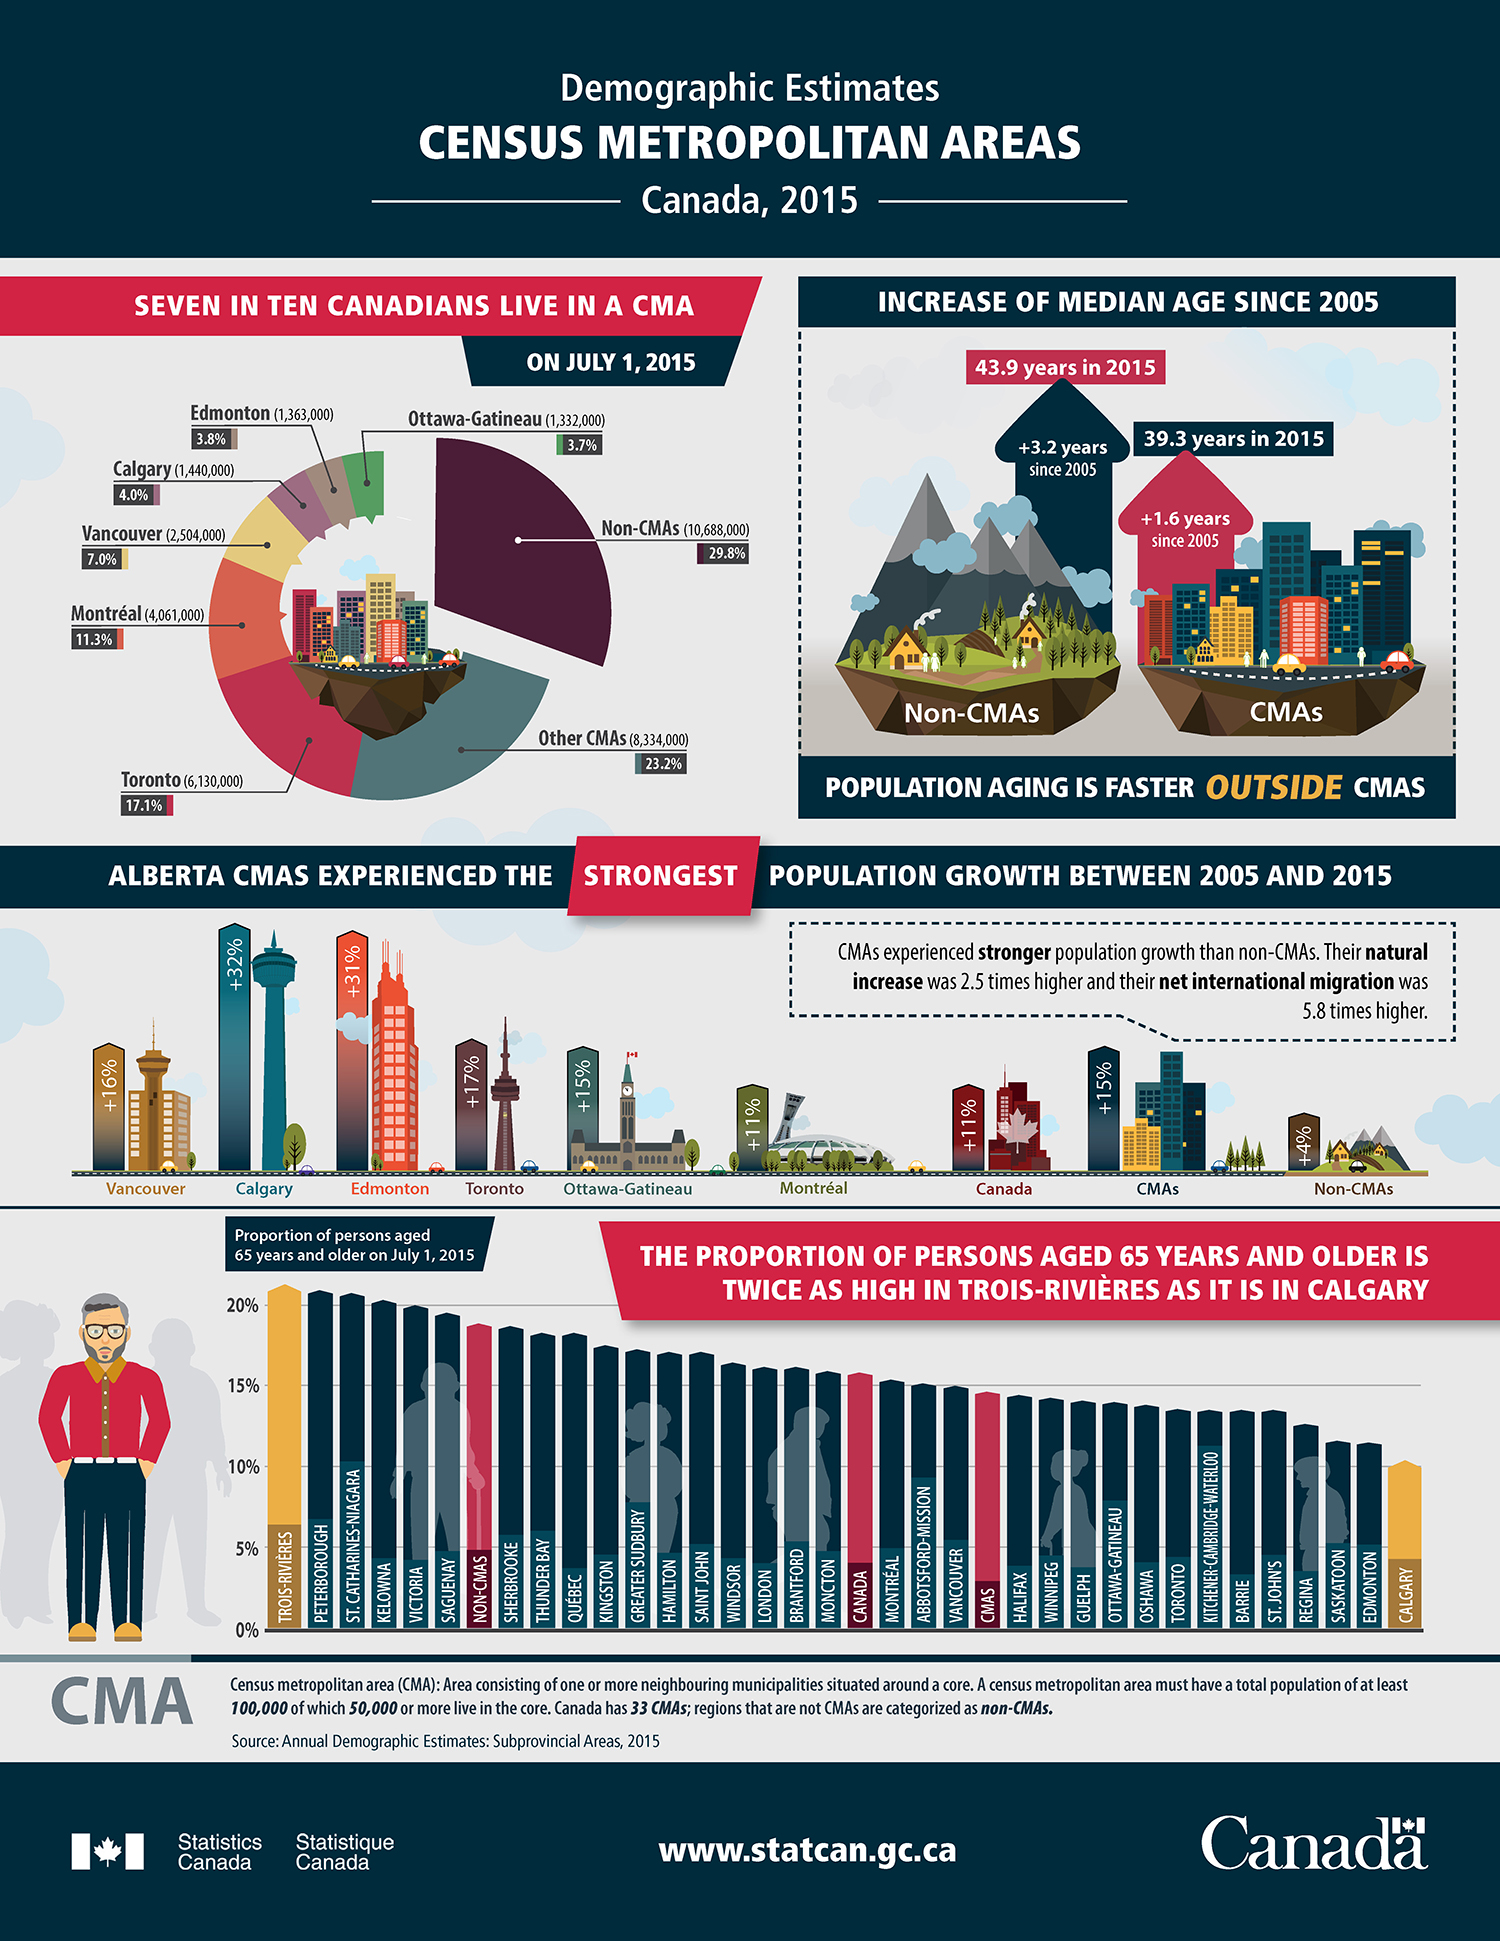 Infographic: Demographic Estimates, Census Metropolitan Areas – Canada, 2015